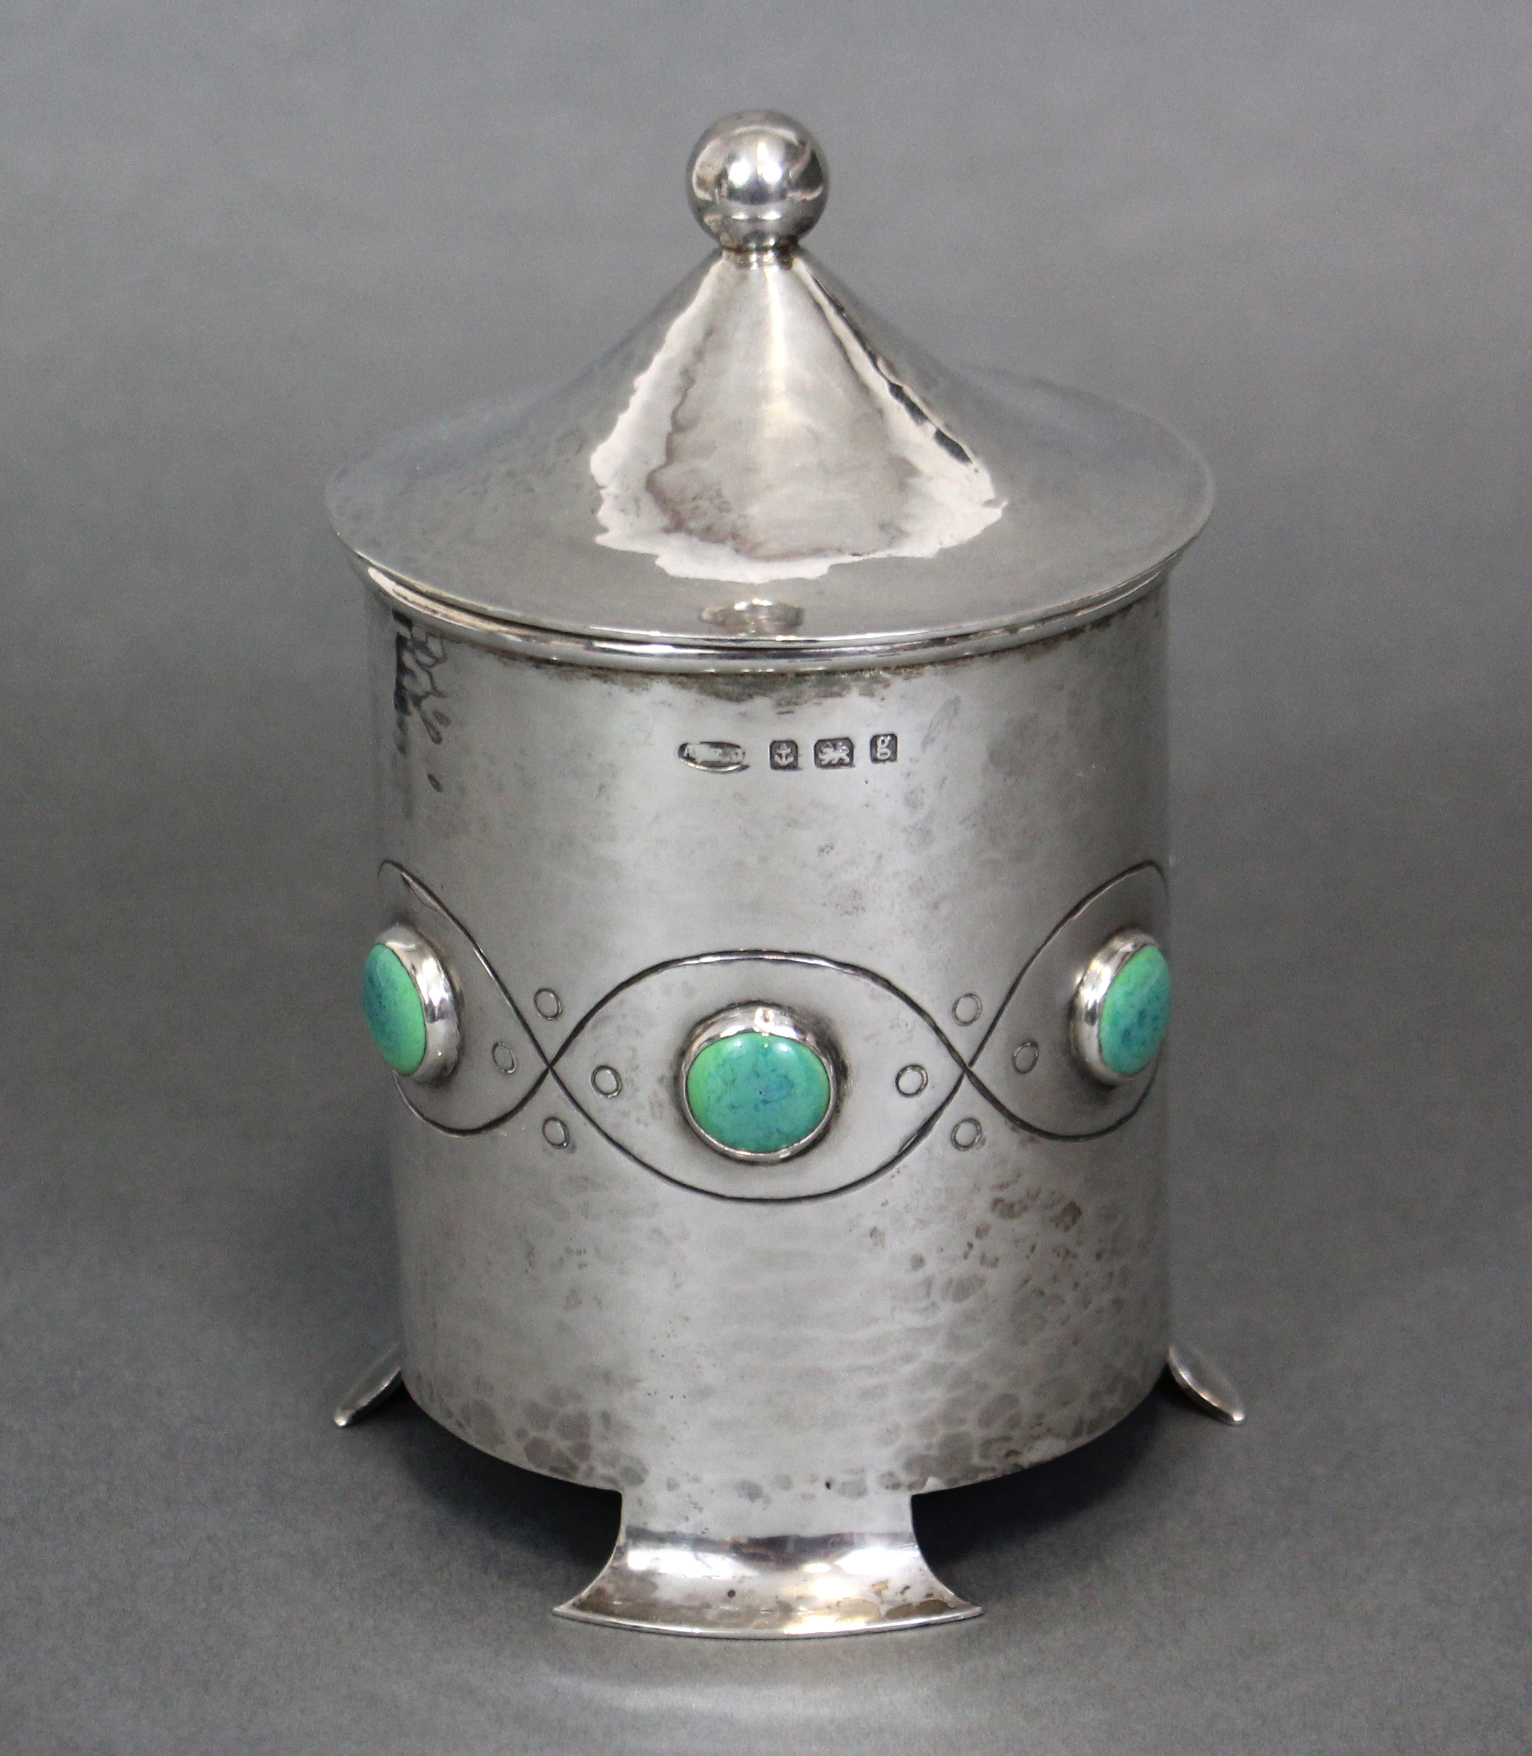 Lot 80 - AN EDWARDIAN ARTS & CRAFTS SILVER POT & COVER , the cylindrical body with planished surface, inset